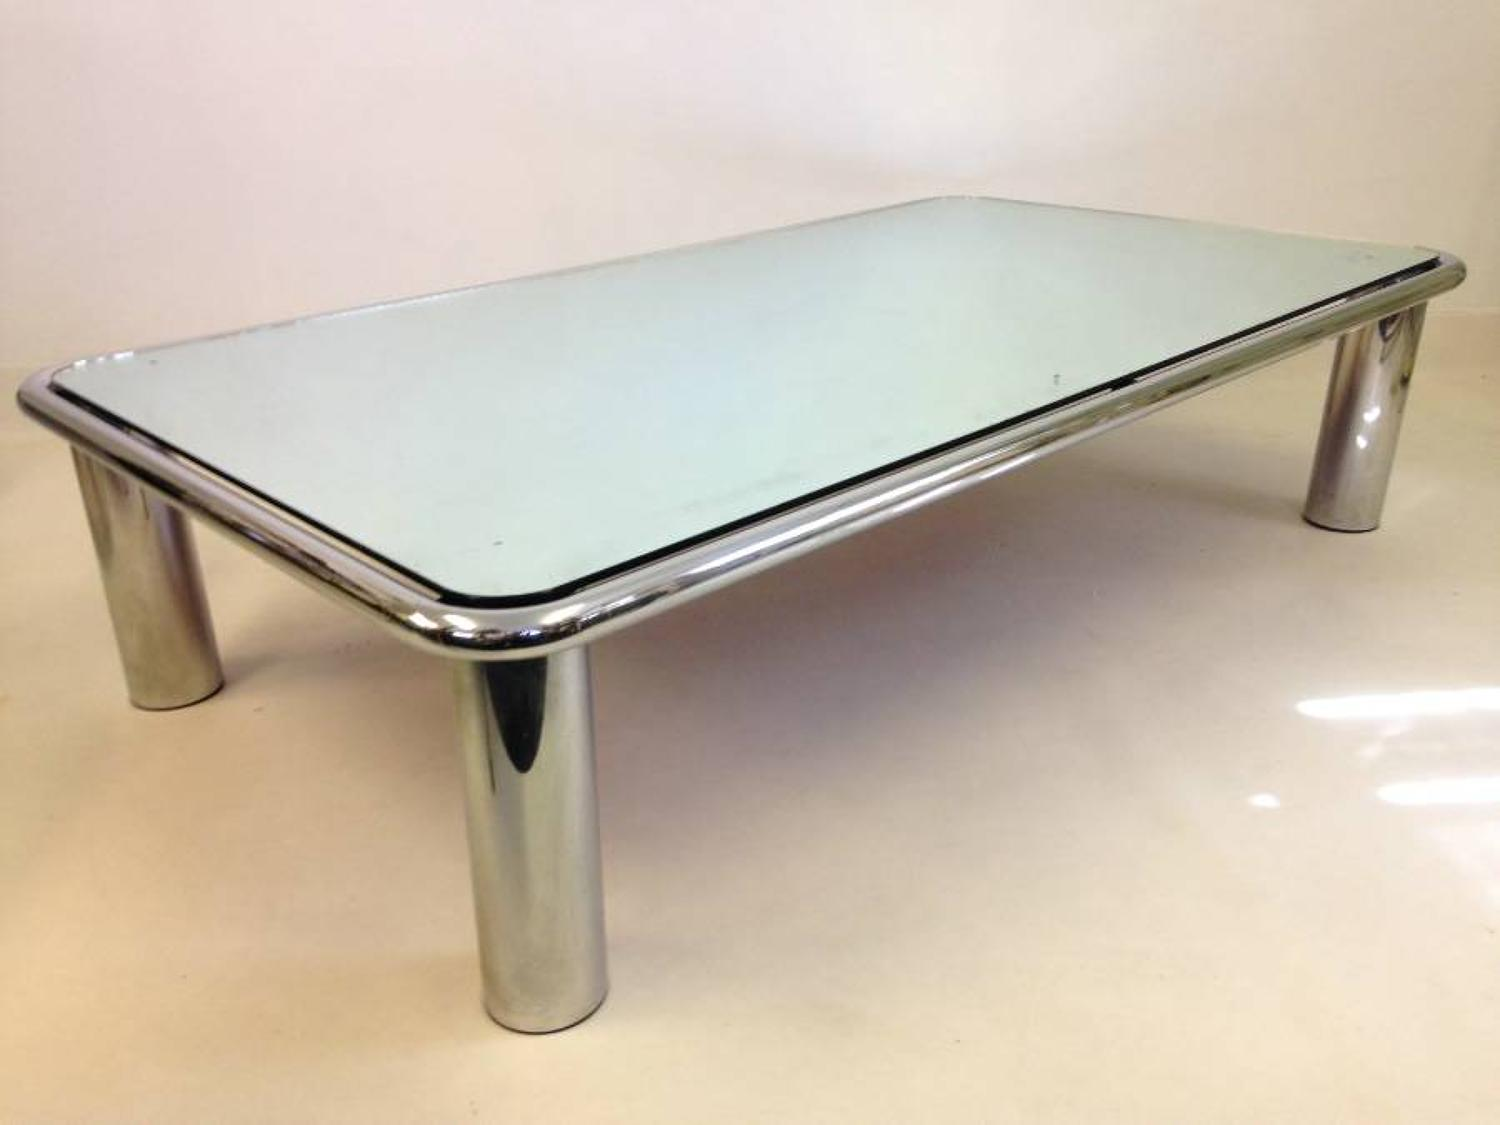 Chrome and mirror coffee table by Mario Bellini